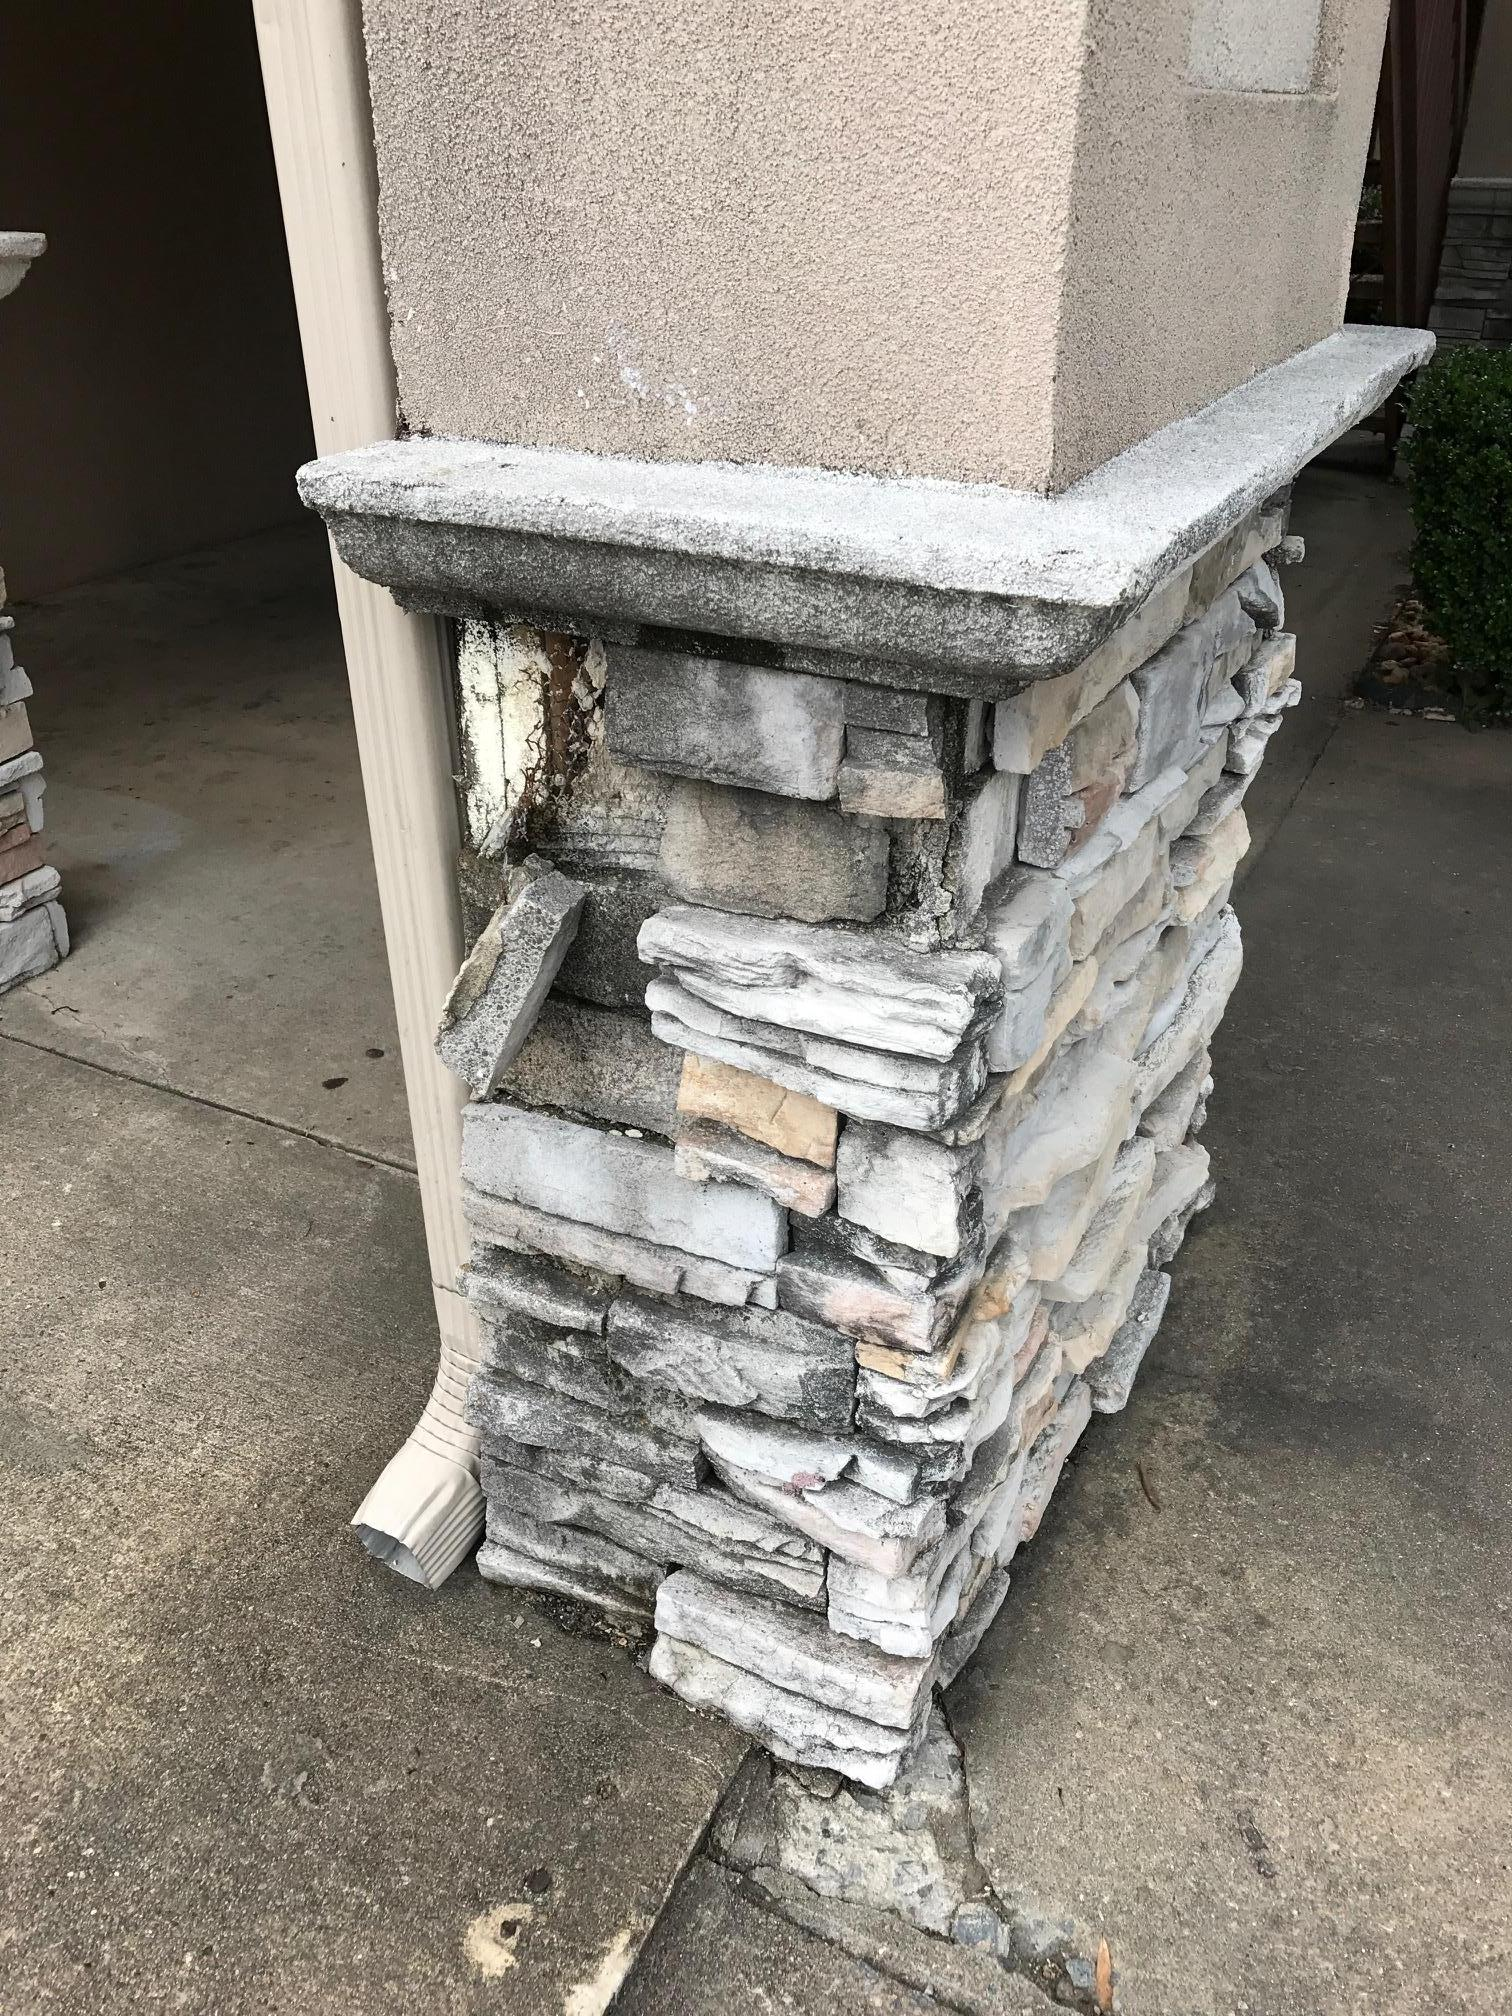 Another column with stone falling off